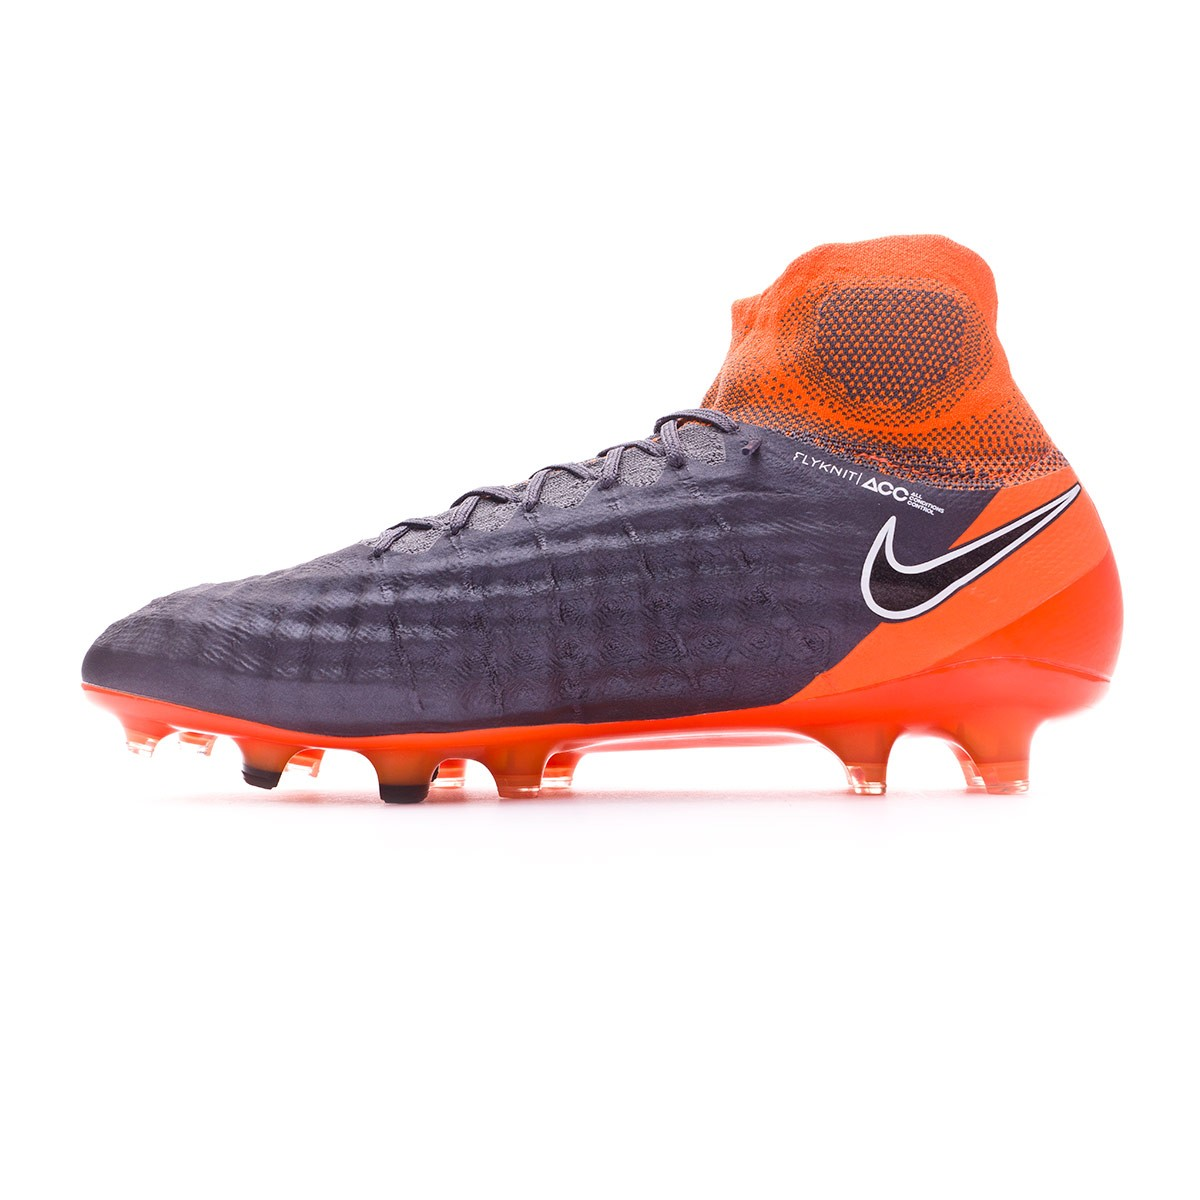 c4f2d6ca231c Football Boots Nike Magista Obra II Elite DF FG Dark grey-Black-Total  orange-White - Tienda de fútbol Fútbol Emotion